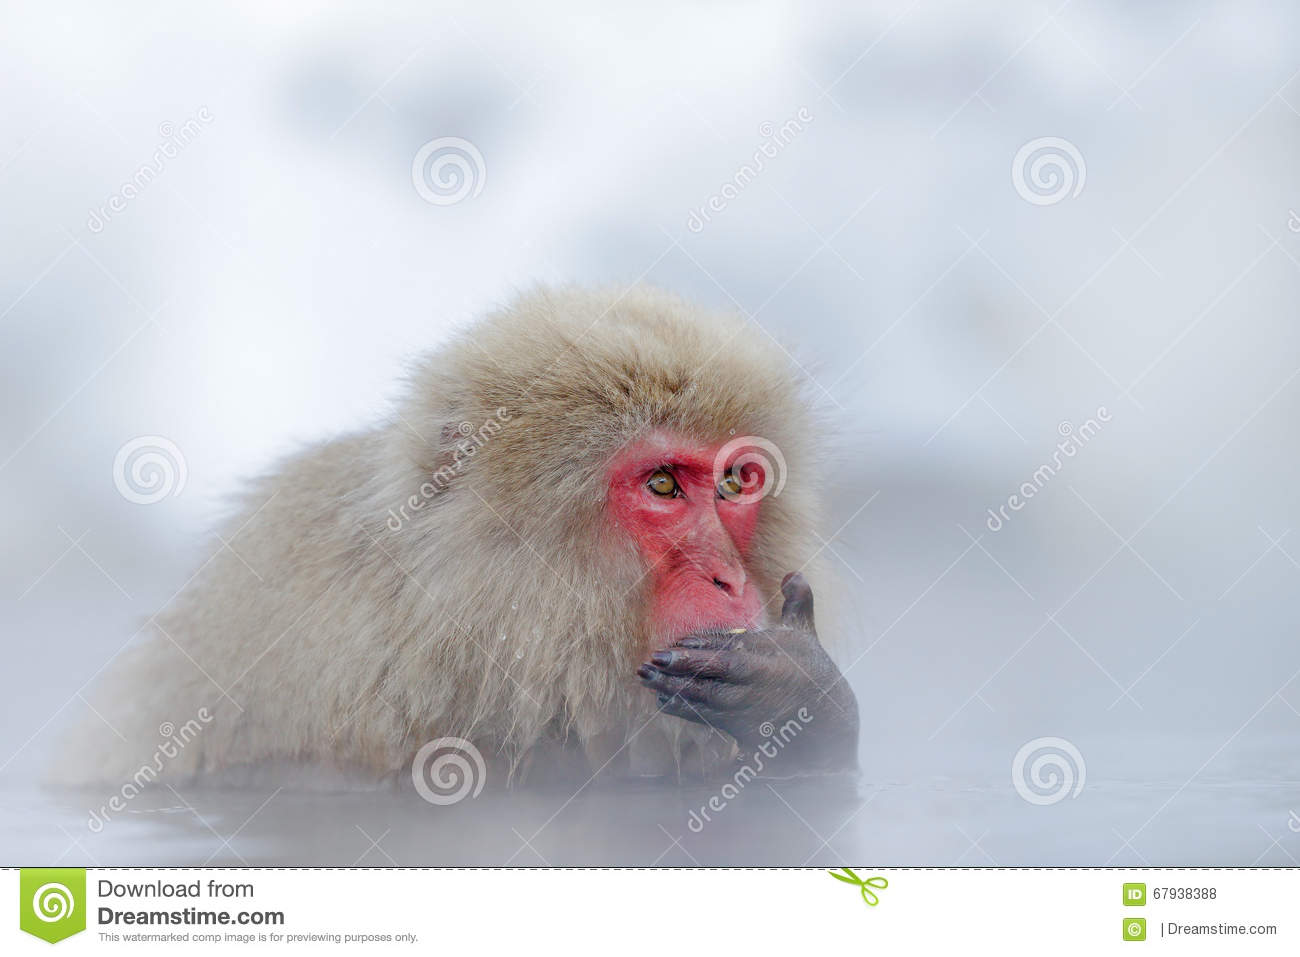 Monkey Japanese Macaque, Macaca Fuscata, Red Face Portrait In The.